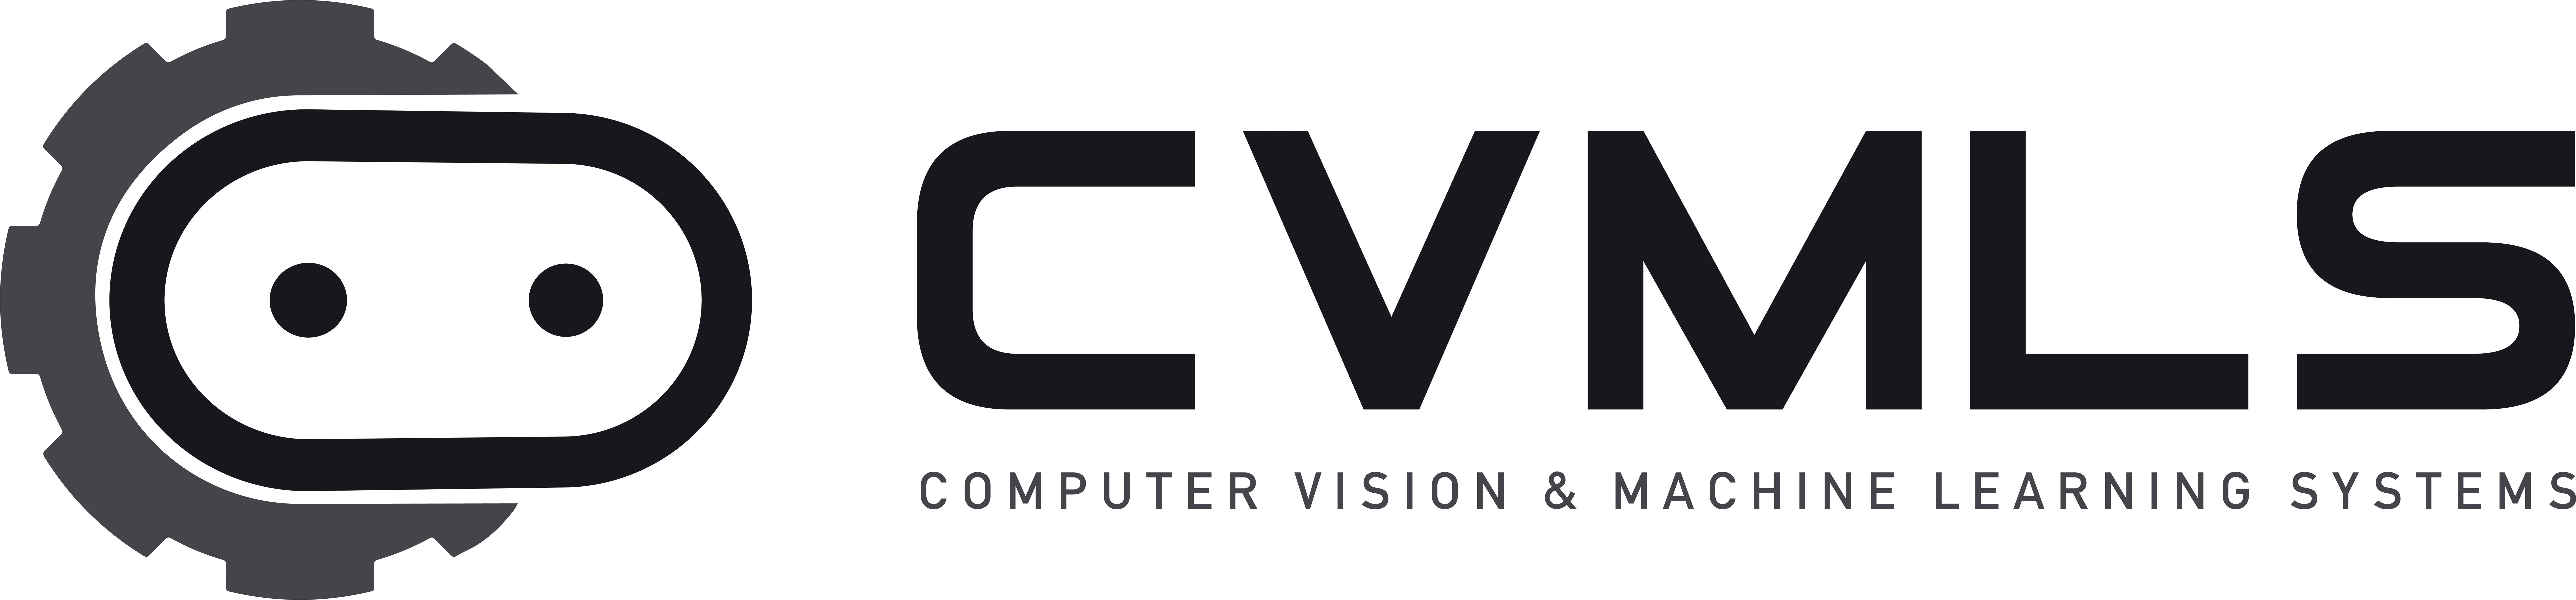 Computer Vision & Machine Learning Systems